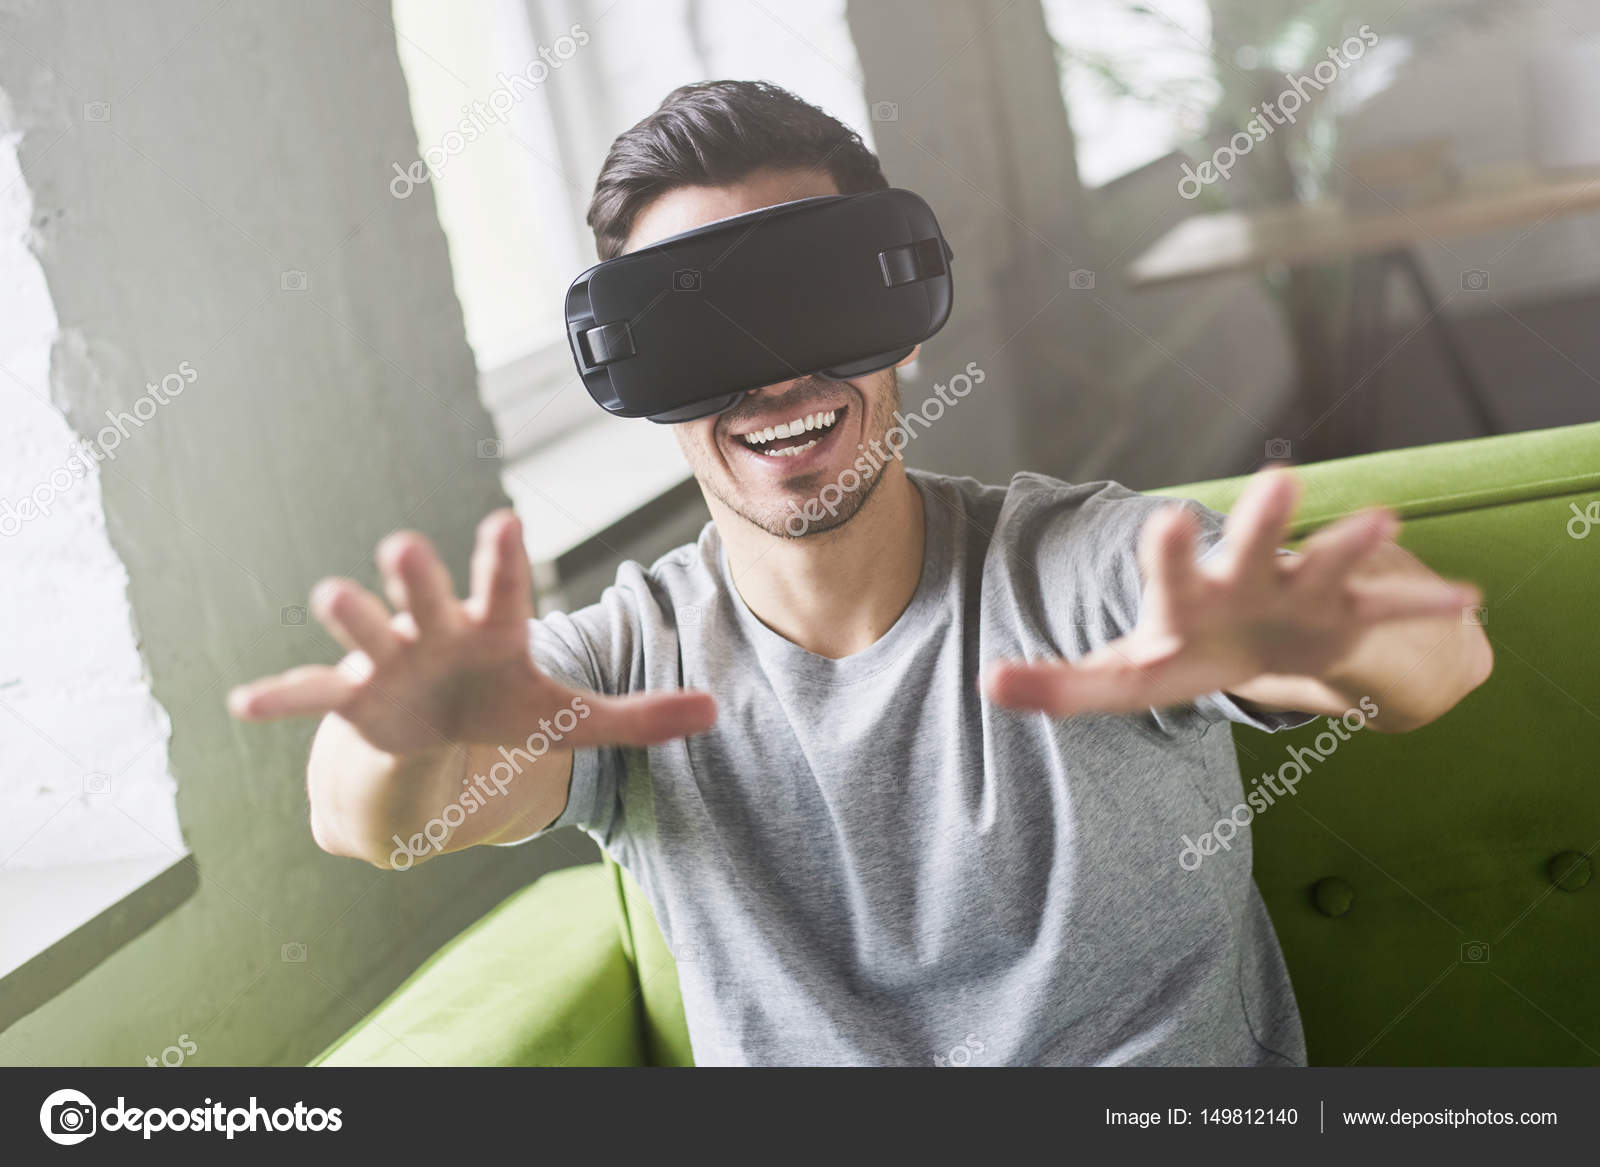 226da387fc1 Close up portrait of astonished handsome guy experiencing virtual reality  while using oculus rift headset for entertaining